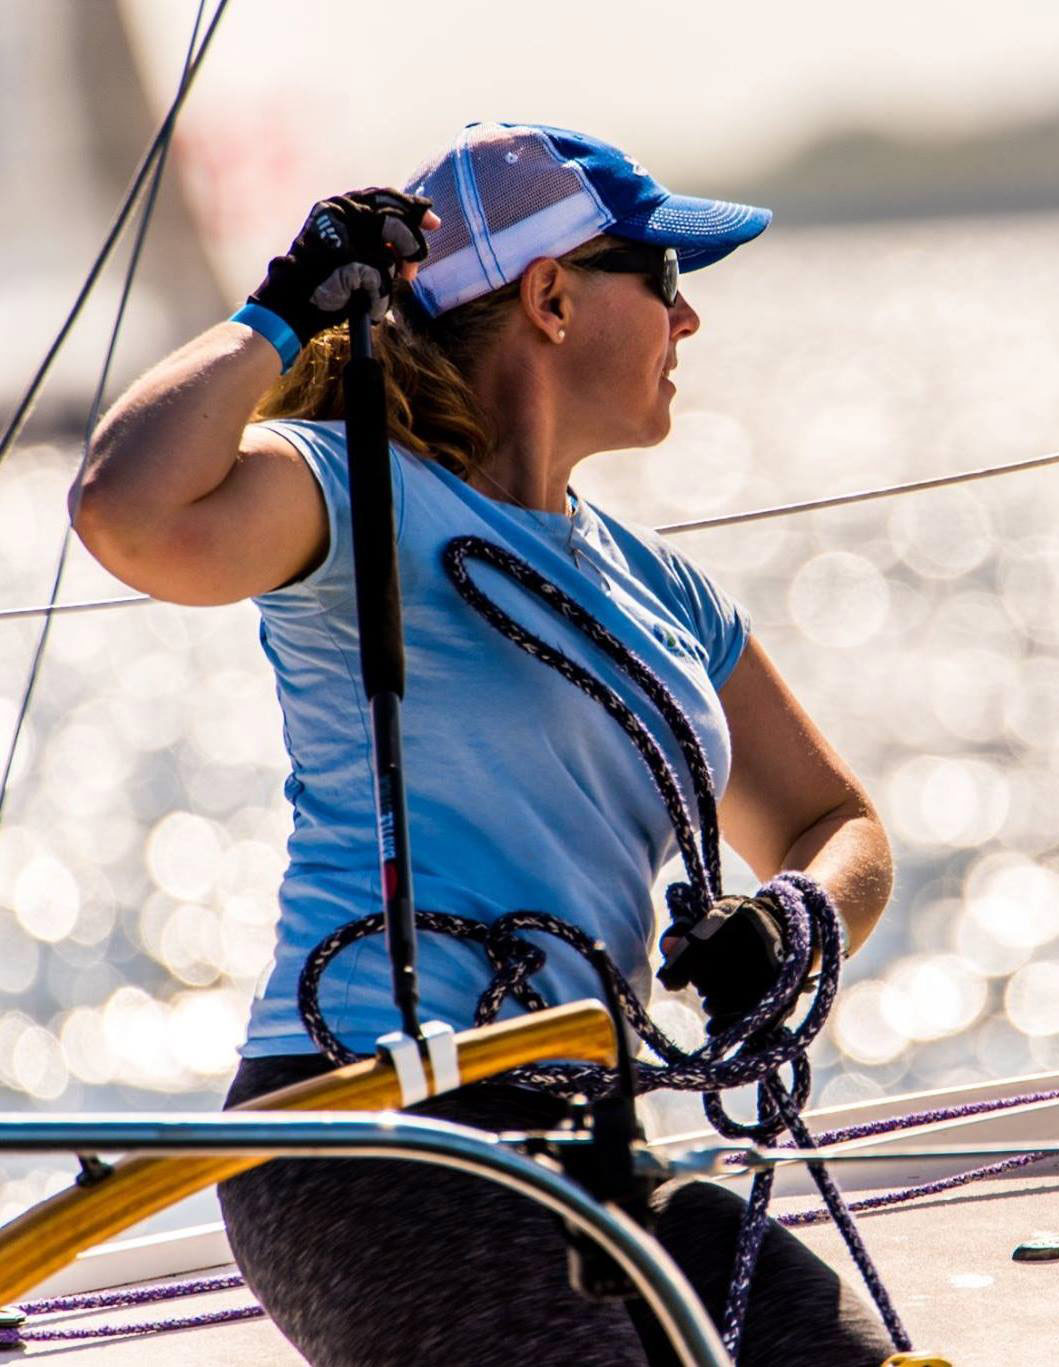 Our Captain - Our captain Erica received the 2018 J/24 World Championship Top Female Skipper Award. Our team won the prestigious Jaeger Women's Trophy in 2017 for beating all of the other female teams in the J/24 World Championship in Ontario, Canada.Every new racing season is a challenge to be better - to be the best racers we can be.